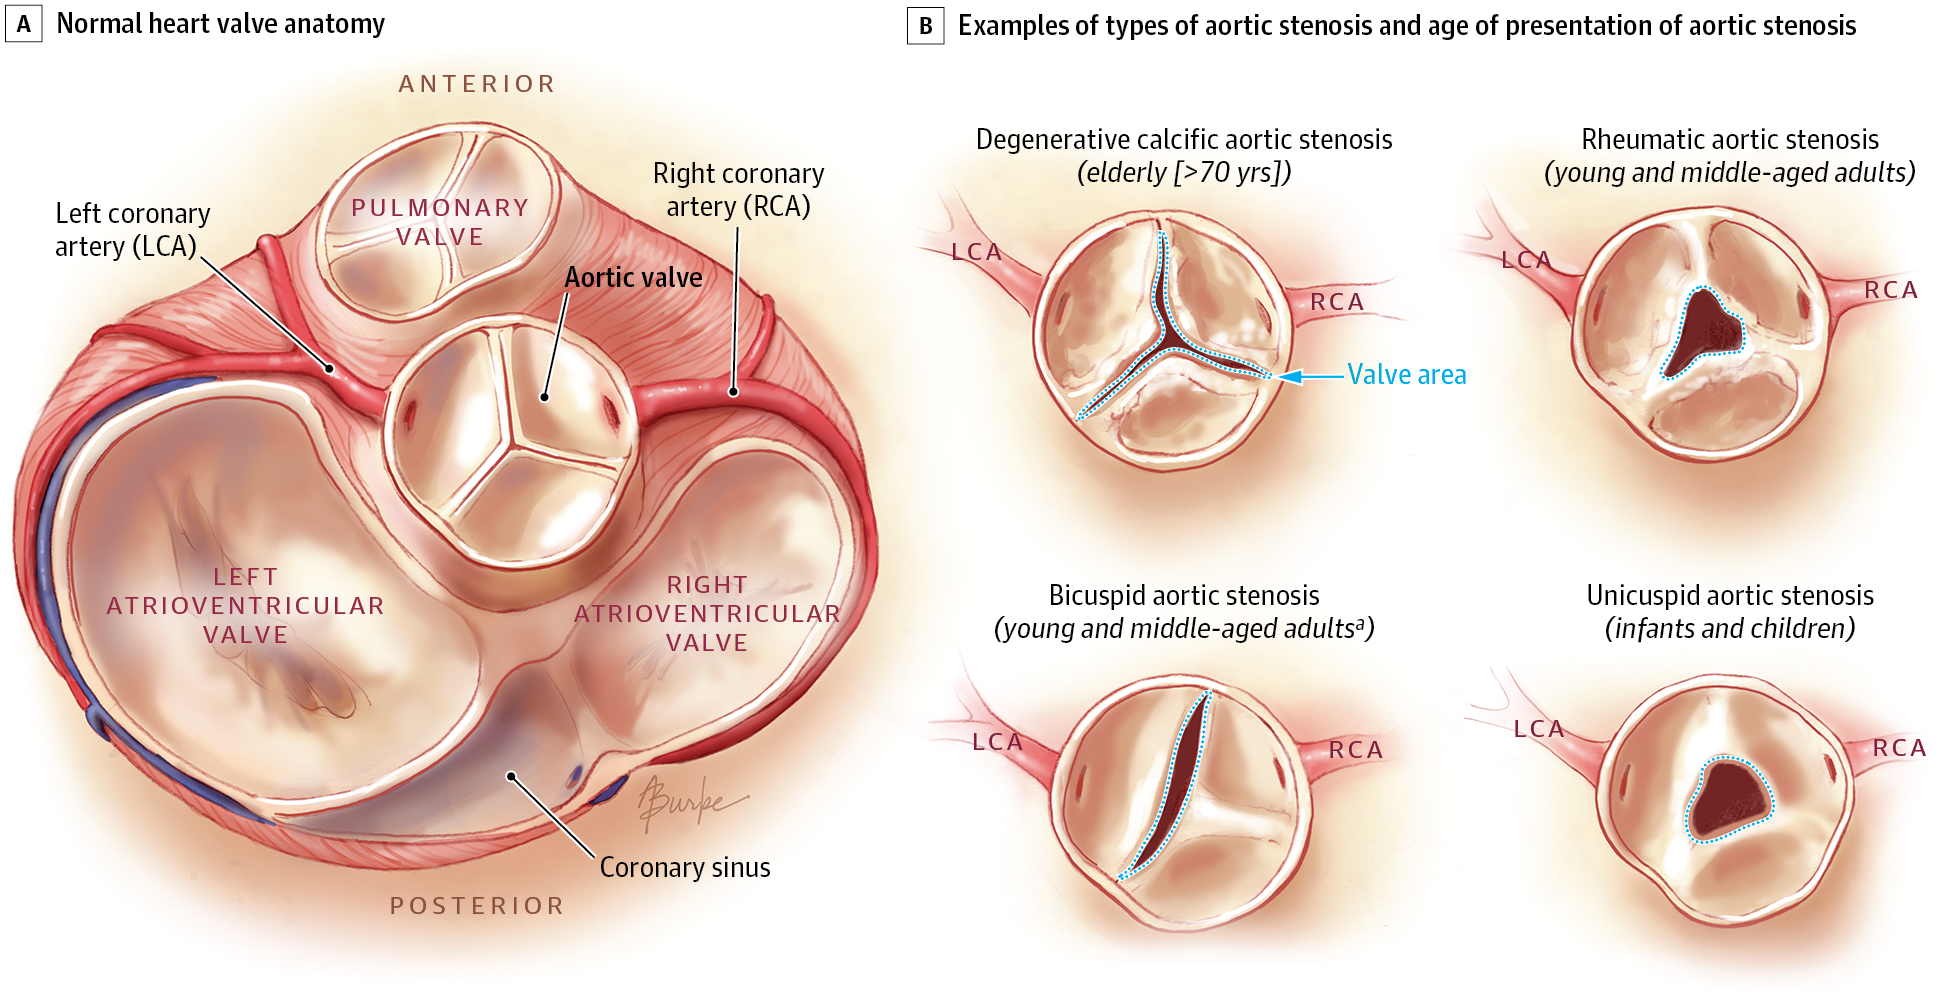 Asymptomatic Aortic Stenosis In The Elderly A Clinical Review